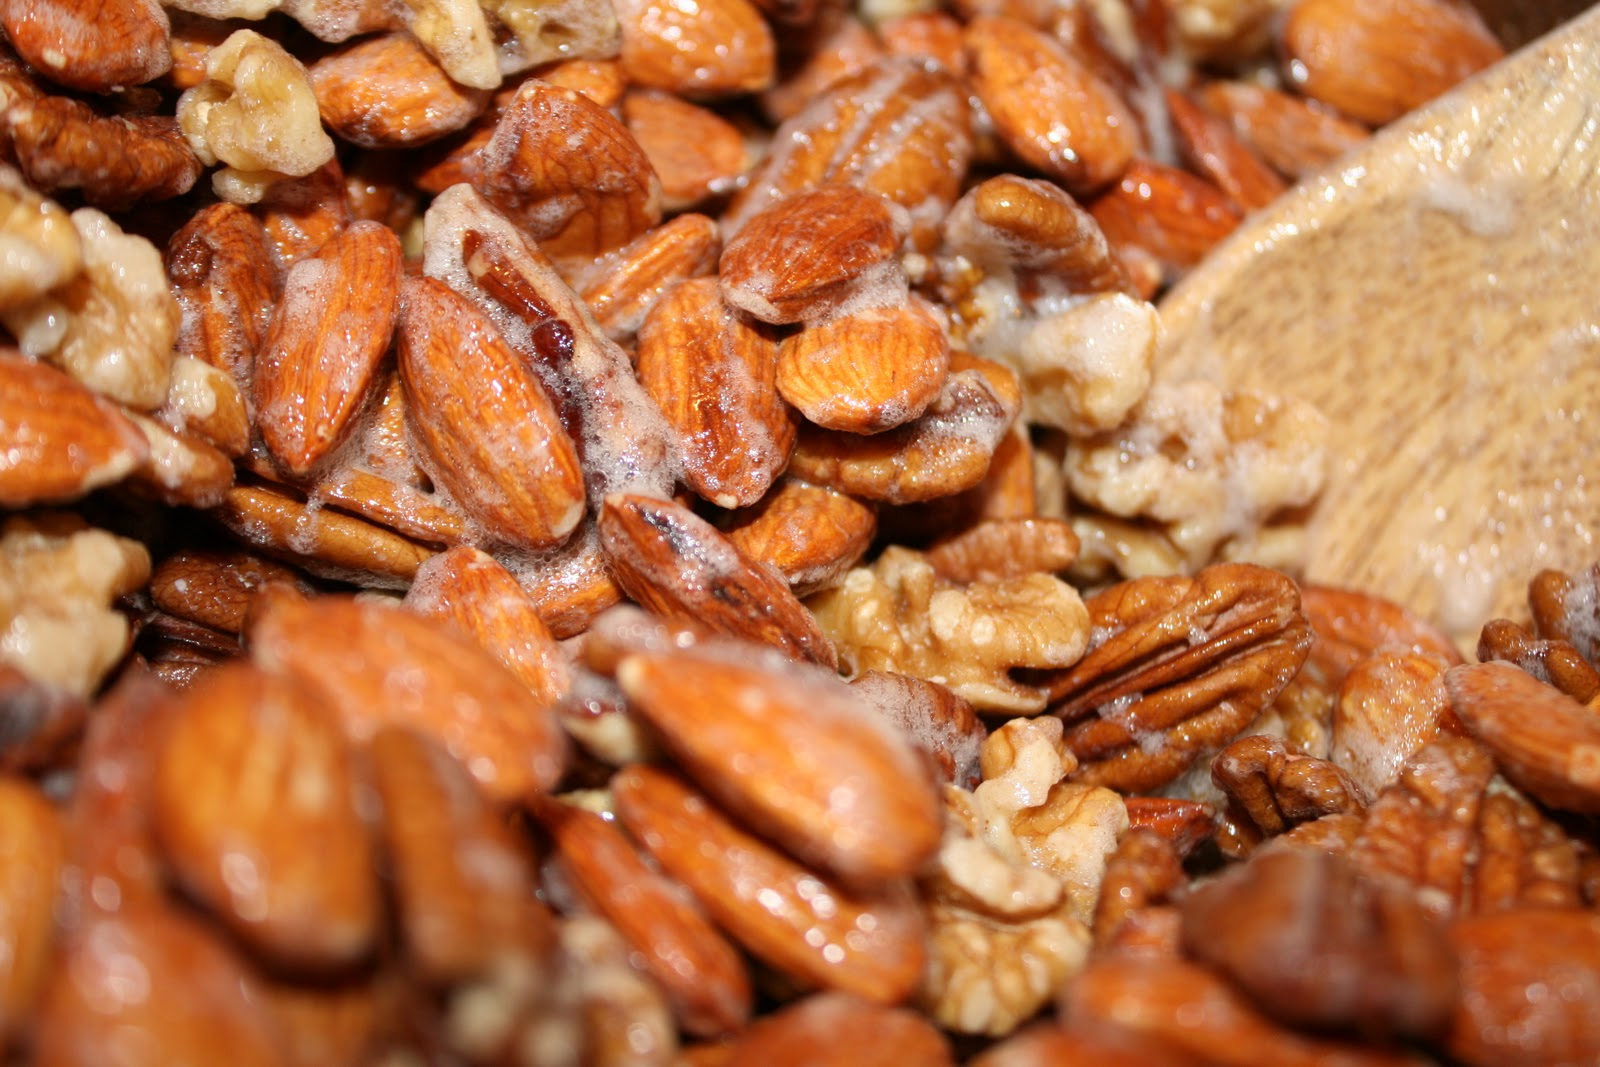 everything to entertain: Cinnamon Roasted Nuts